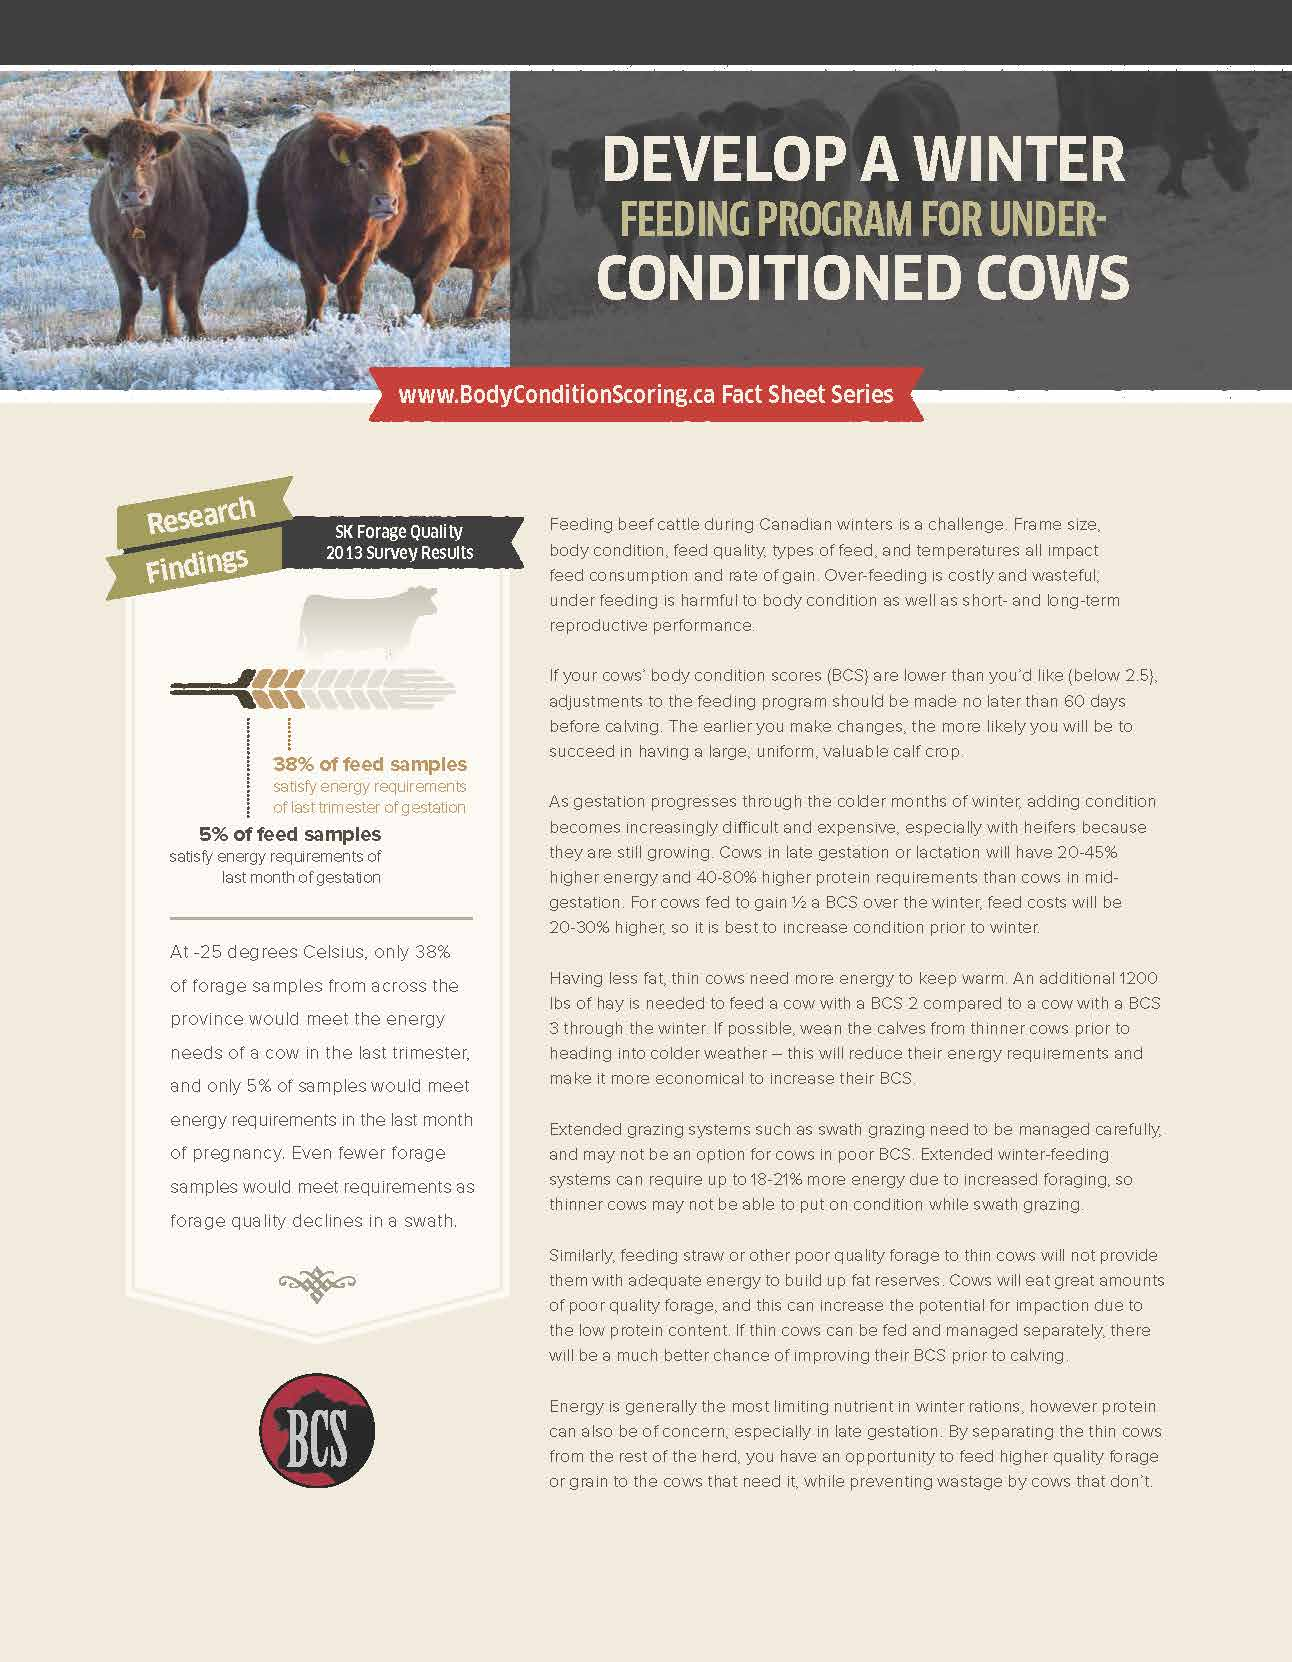 Fact sheet: Develop a Winter Feeding Program for Underconditioned/Thin Cows